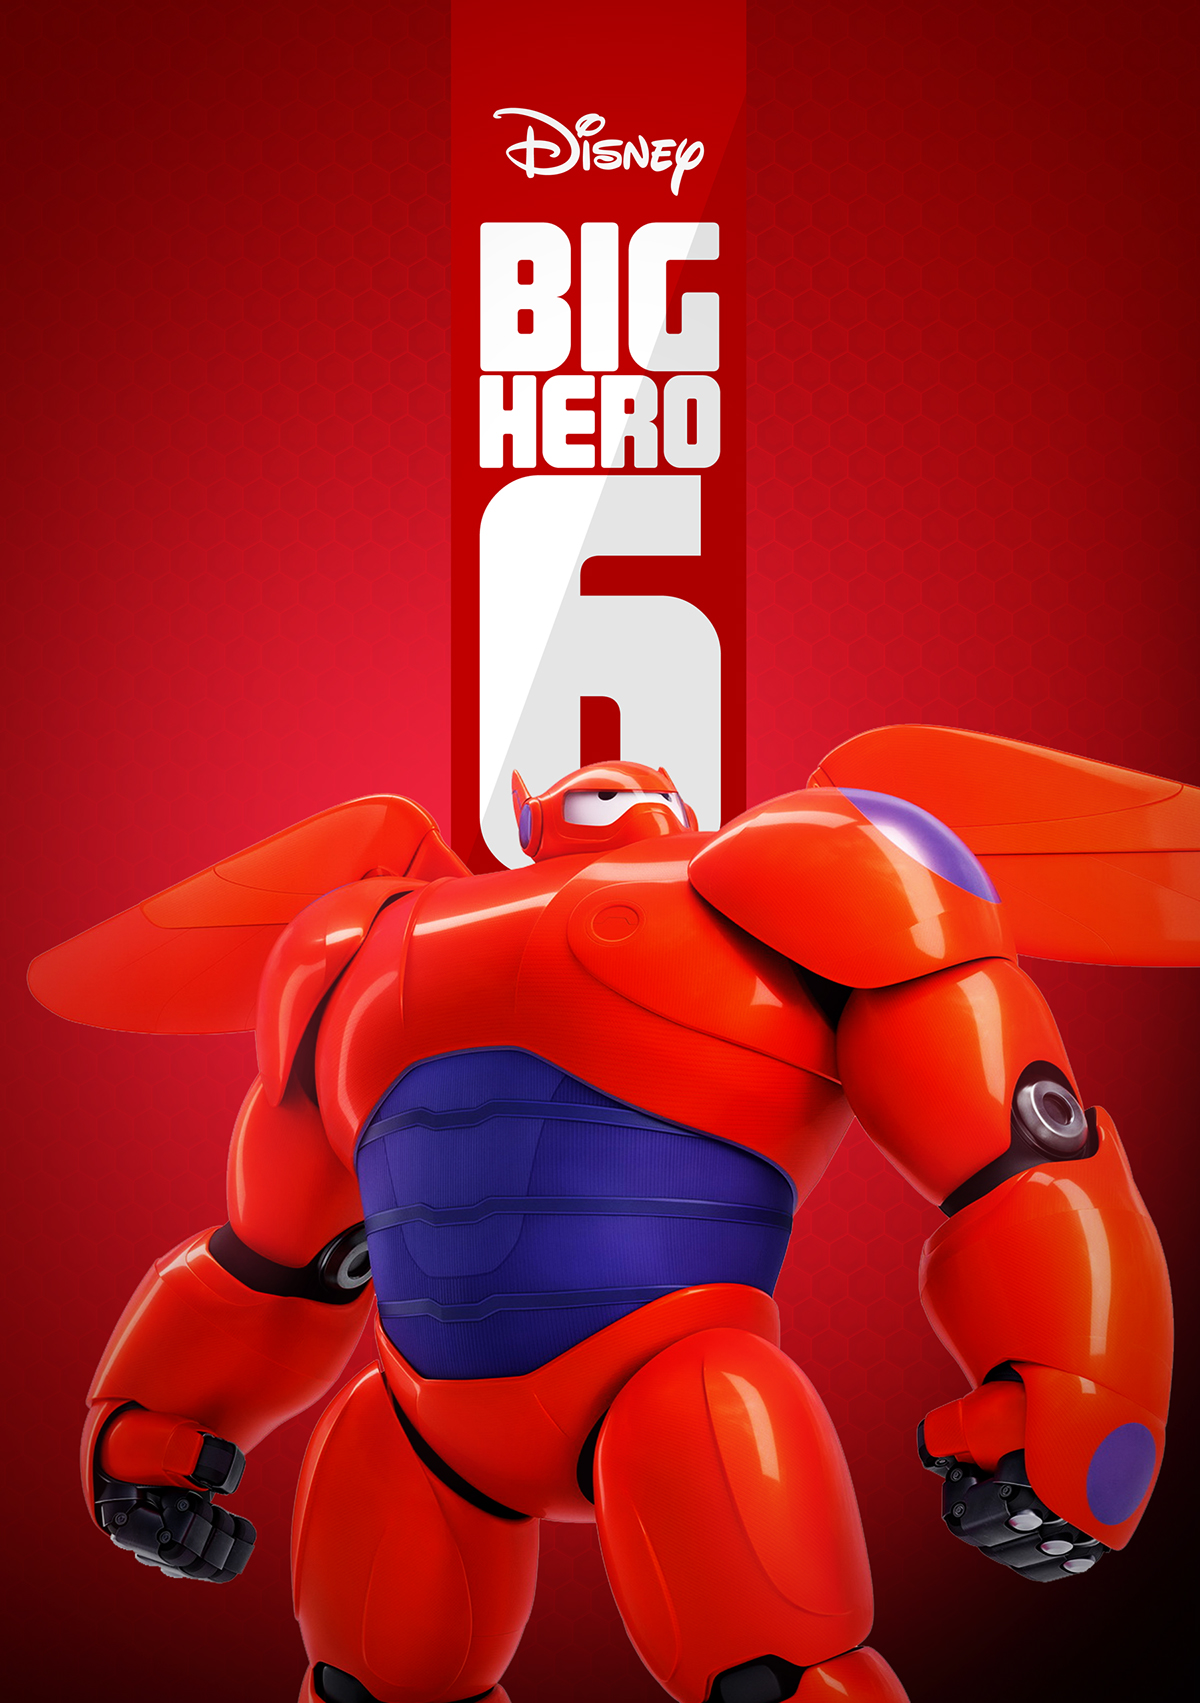 Big Hero 6 New Logo and Poster - Proposal on Pantone ...